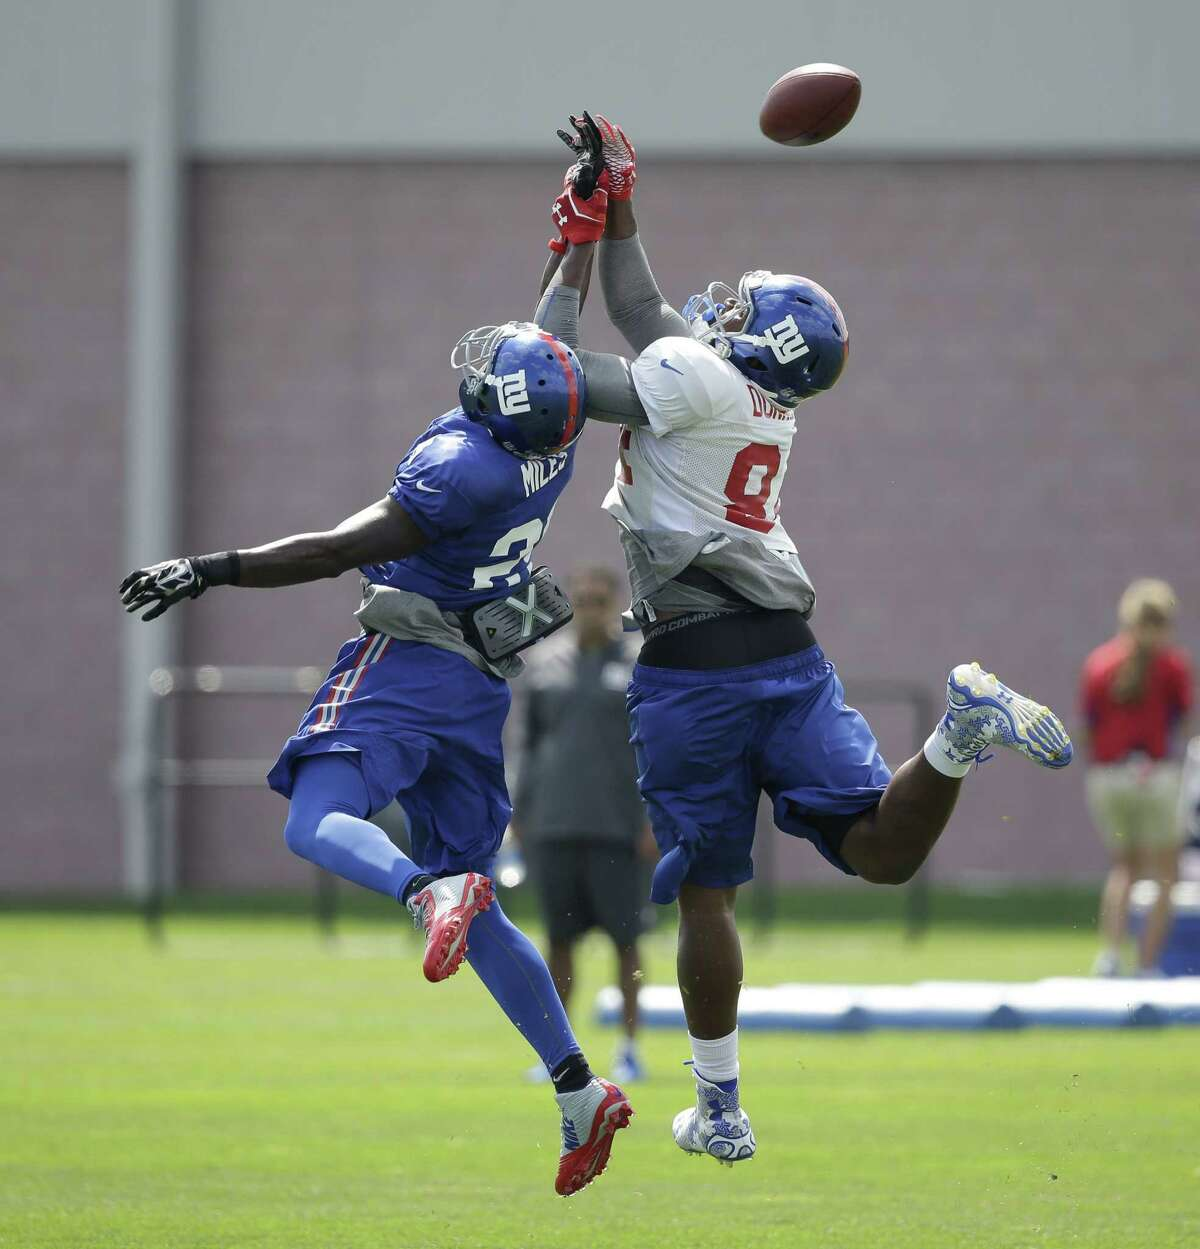 New York Giants safety Jeromy Miles, left, and tight end Larry Donnell go up for a ball during practice on Monday in East Rutherford, N.J.